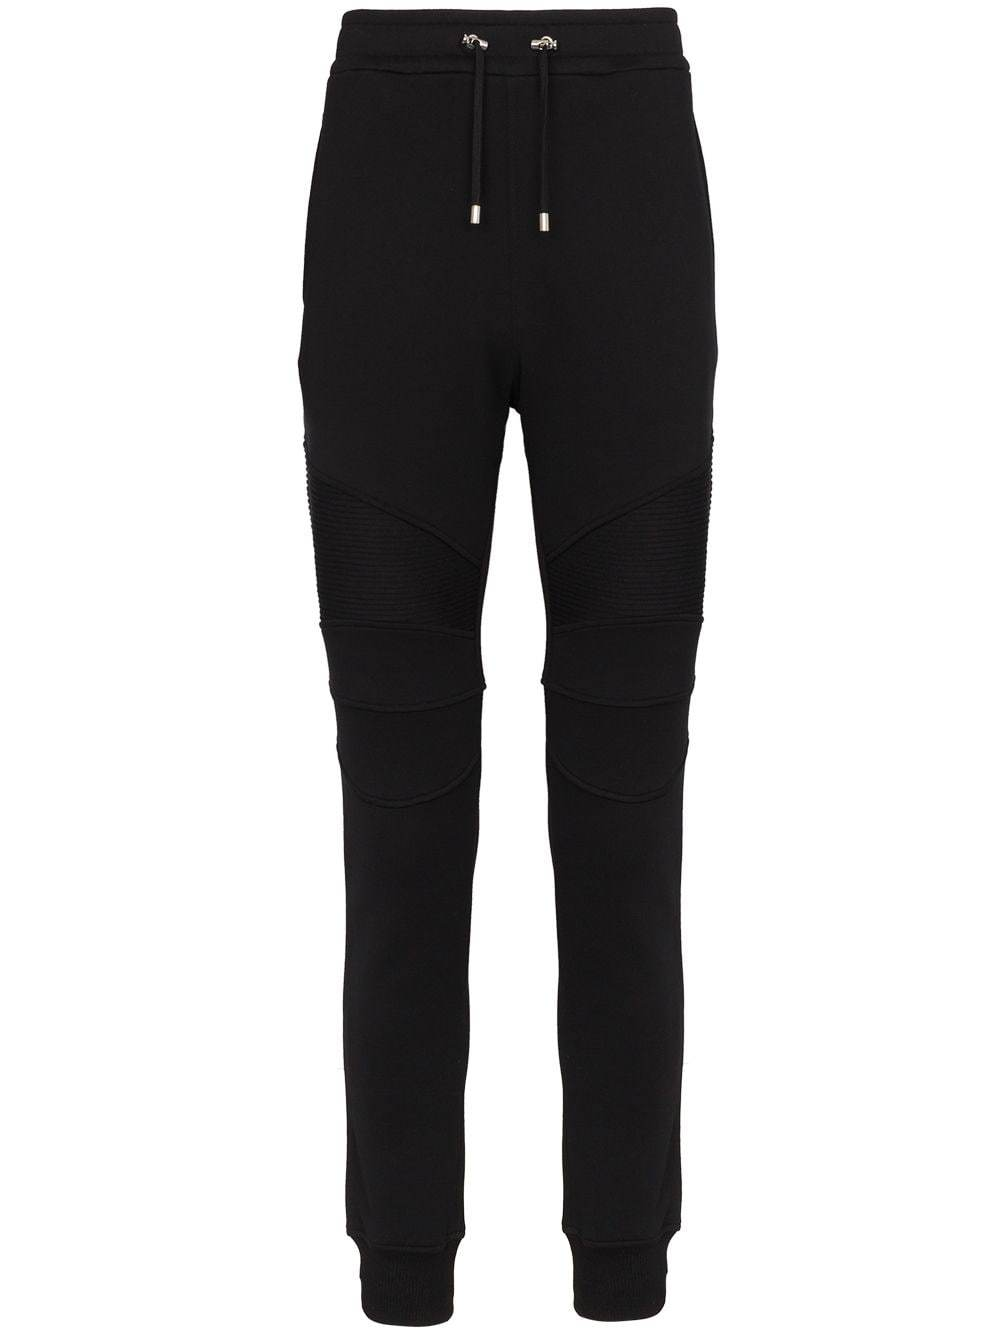 BALMAIN ribbed sweatpants with back logo black - Maison De Fashion